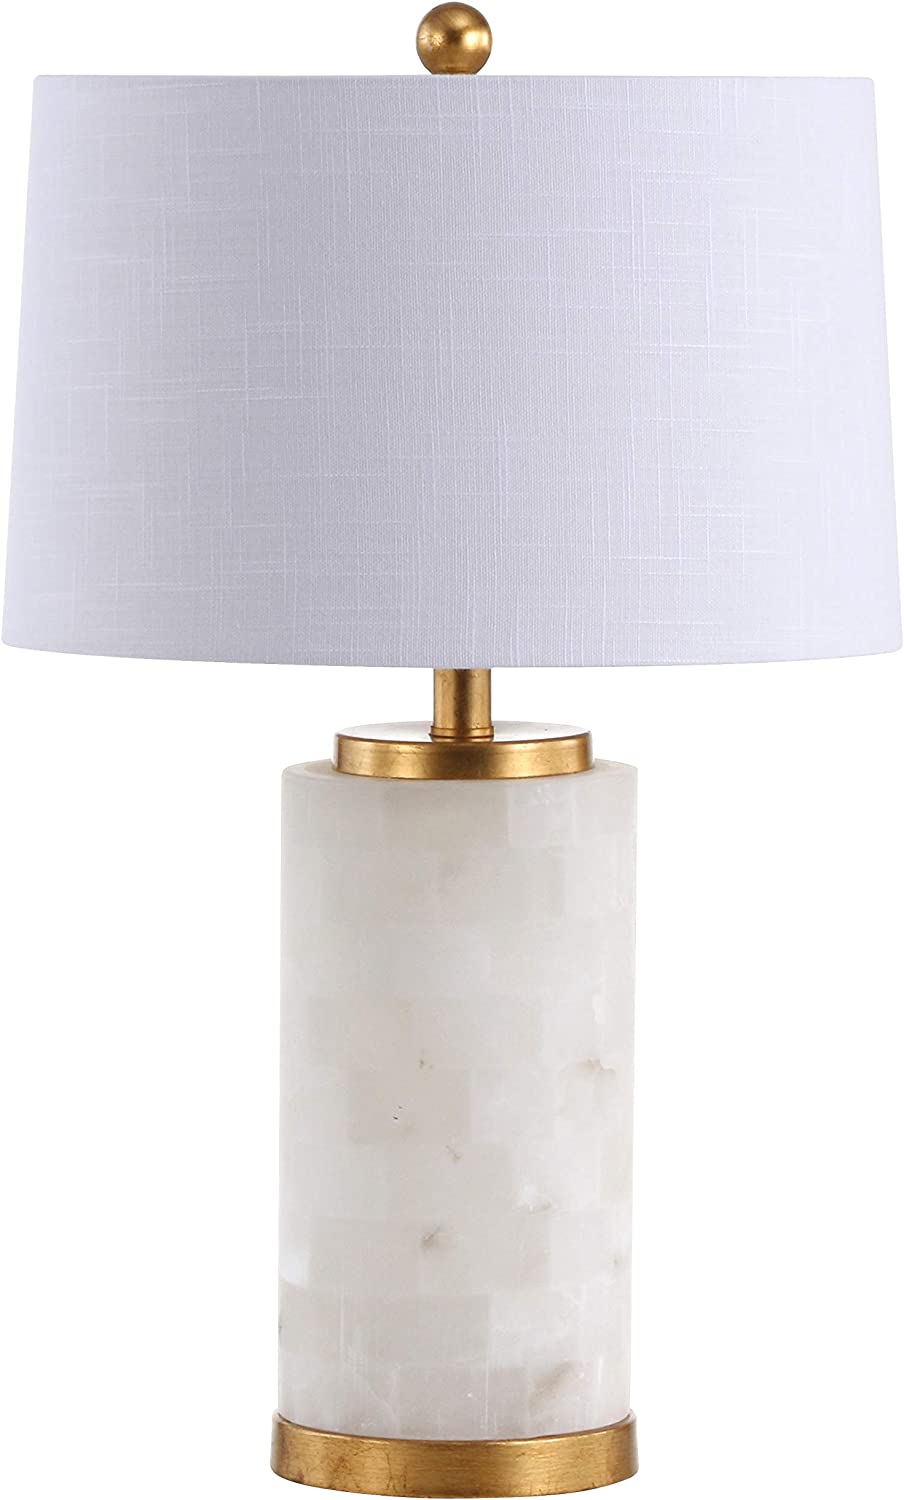 """JONATHAN Y JYL6203A Eliza 25.5"""" Alabaster LED Lamp Coastal,Contemporary,Transitional for Bedroom, Living Room, Office, College Dorm, Coffee Table, Bookcase, White/Gold Leaf"""